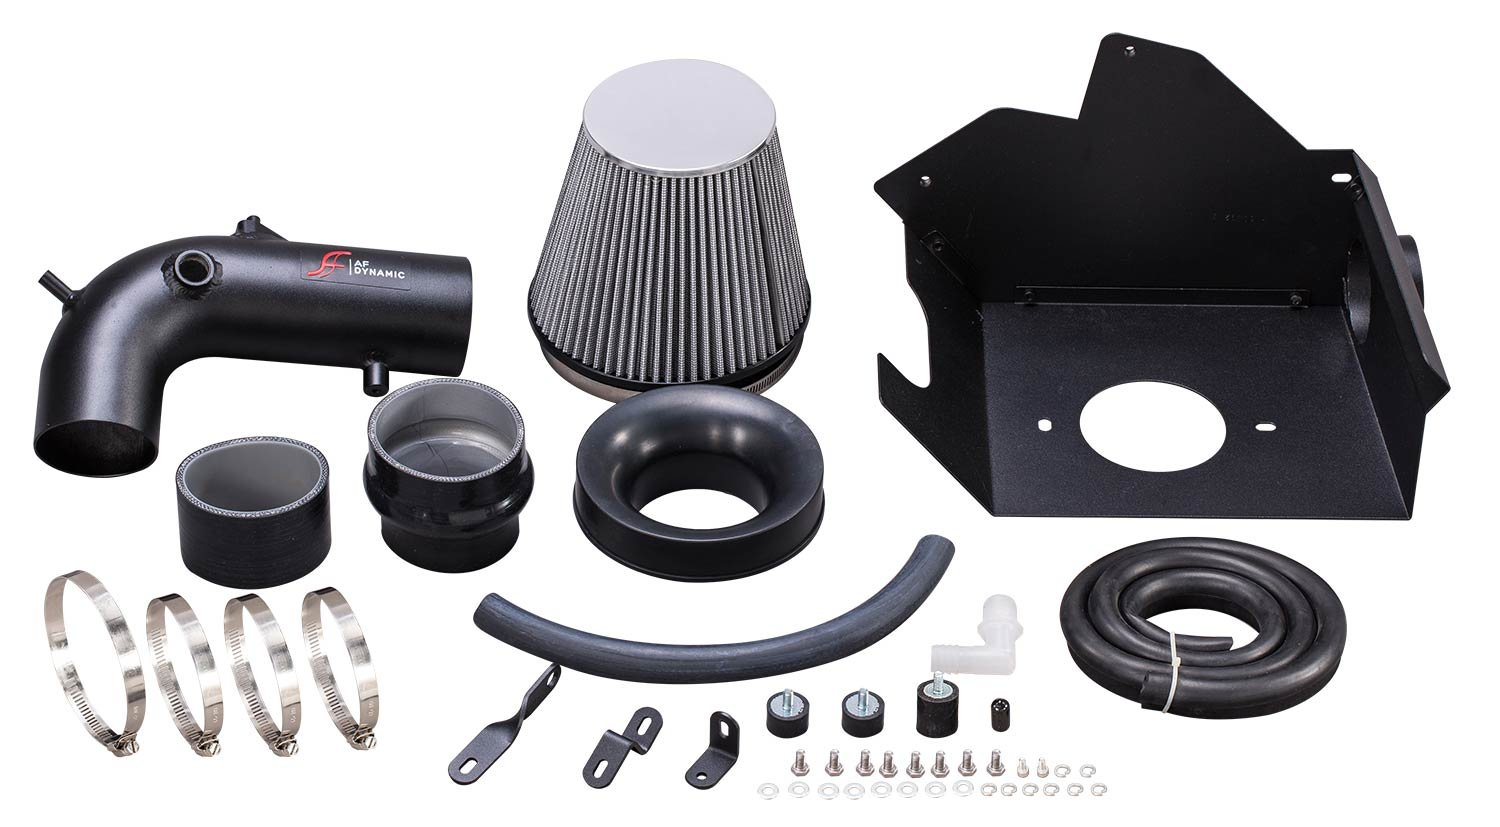 Amazon.com: Velocity Concepts AIR Intake KIT for 10-17 Chevrolet Equinox/GMC Terrain 2.4L 2.4: Automotive